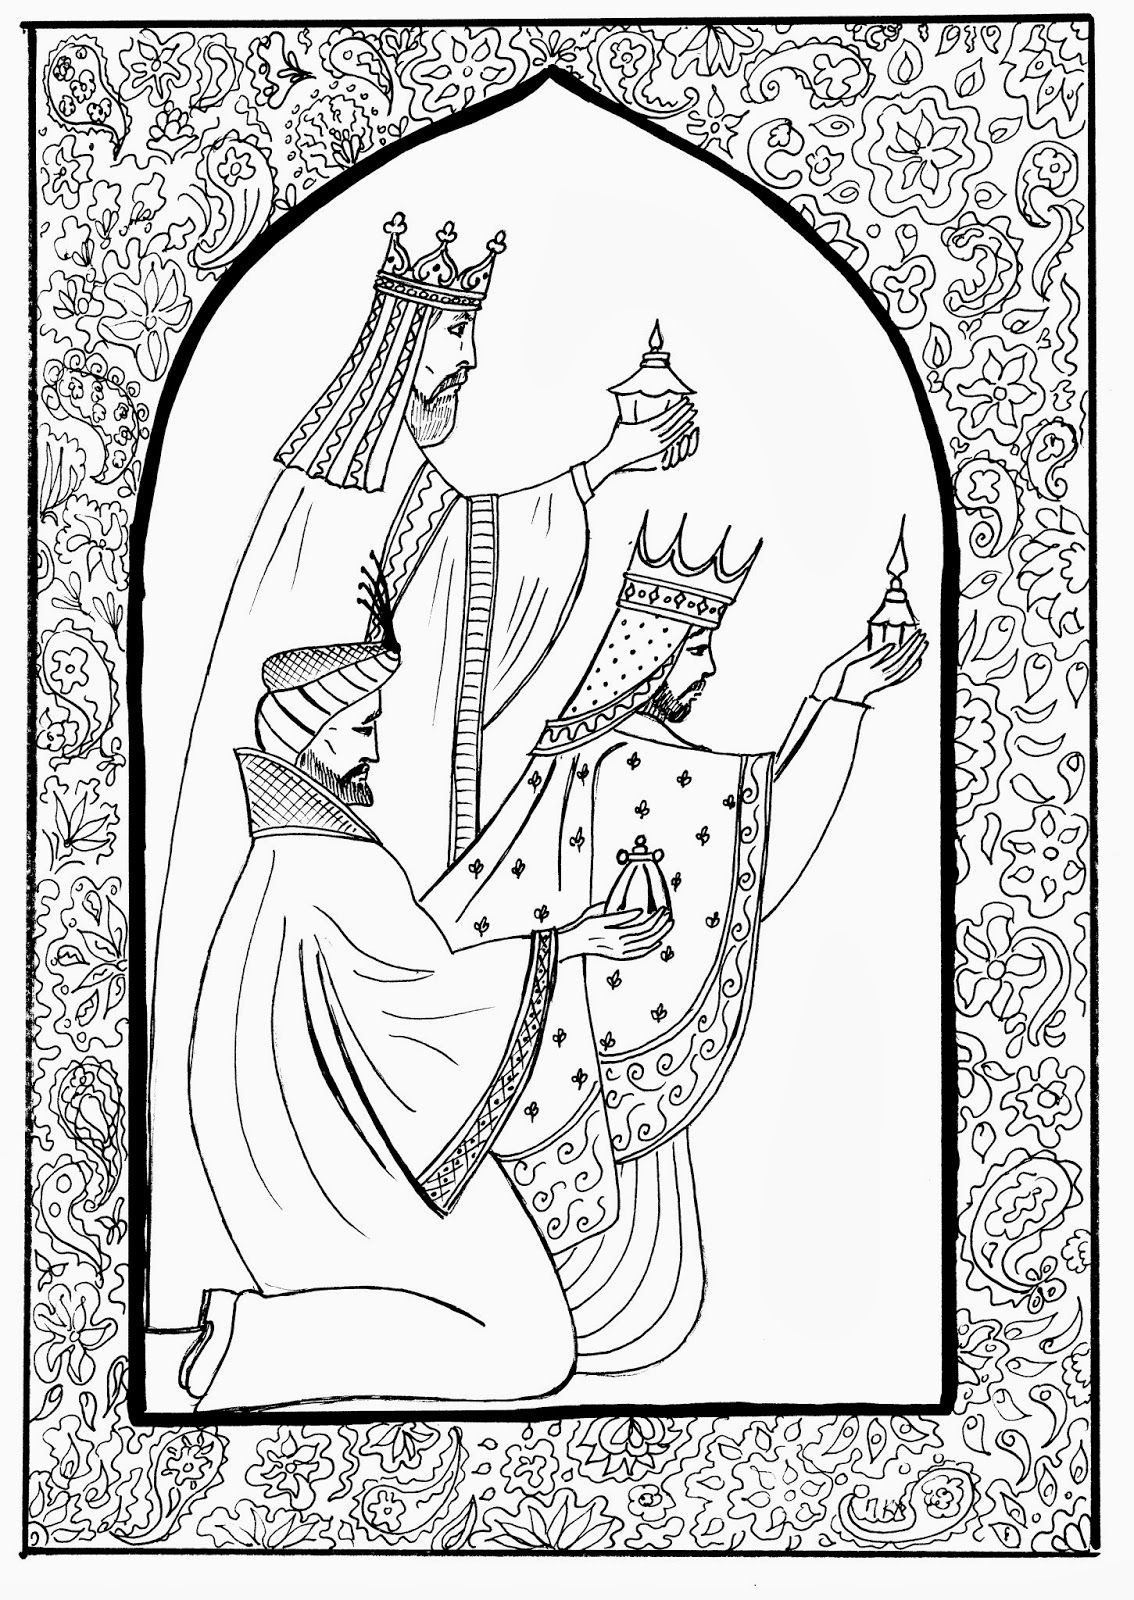 Three wise men coloring page | Christmas + Easter Coloring Pages for ...